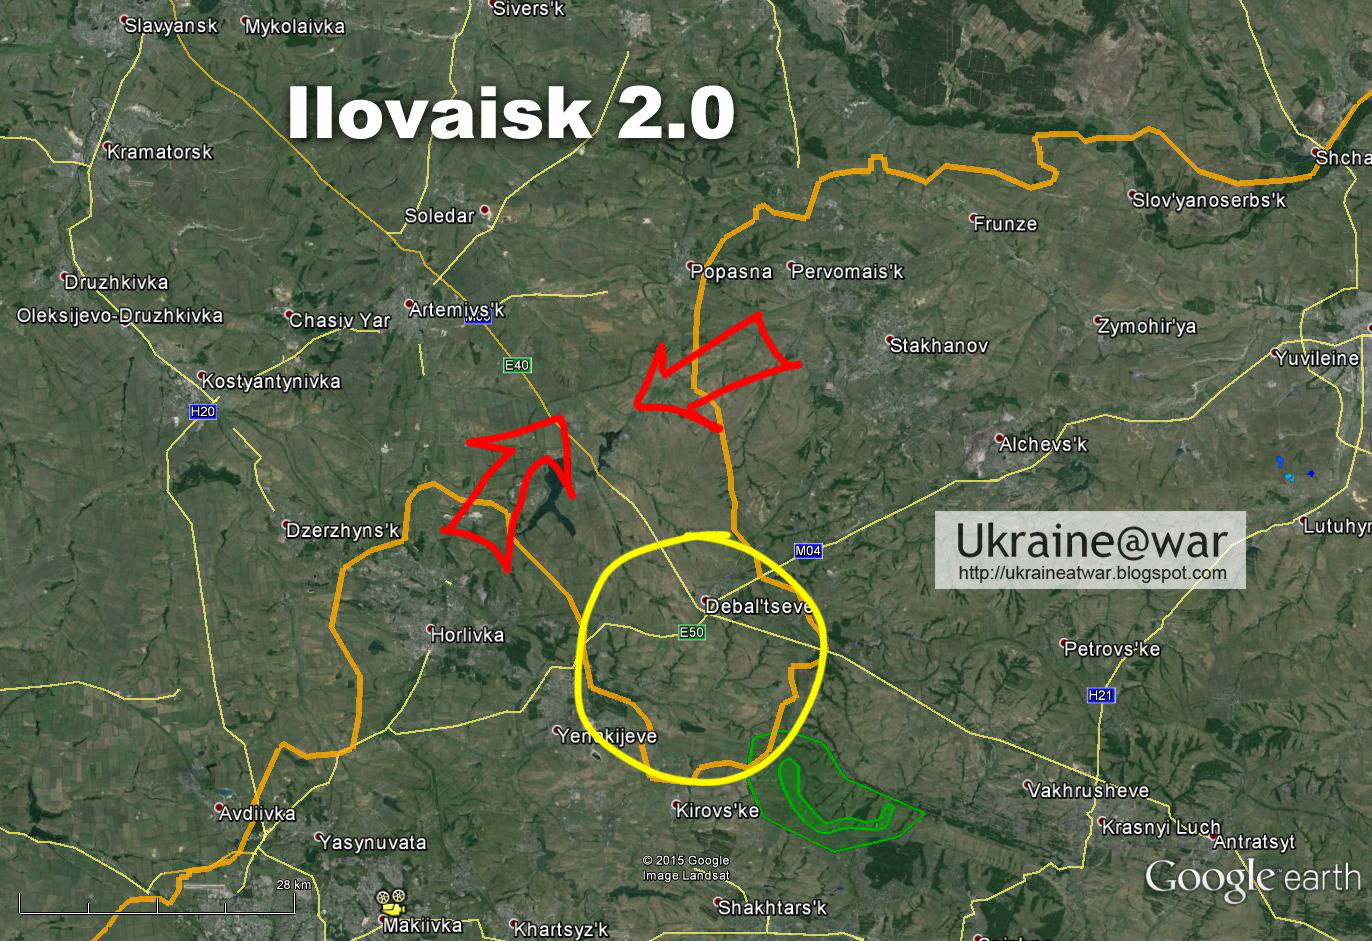 Map Of Debaltseve Map Of Lviv Map Of Uzhhorod Map Of Kharkiv - Uzhhorod map